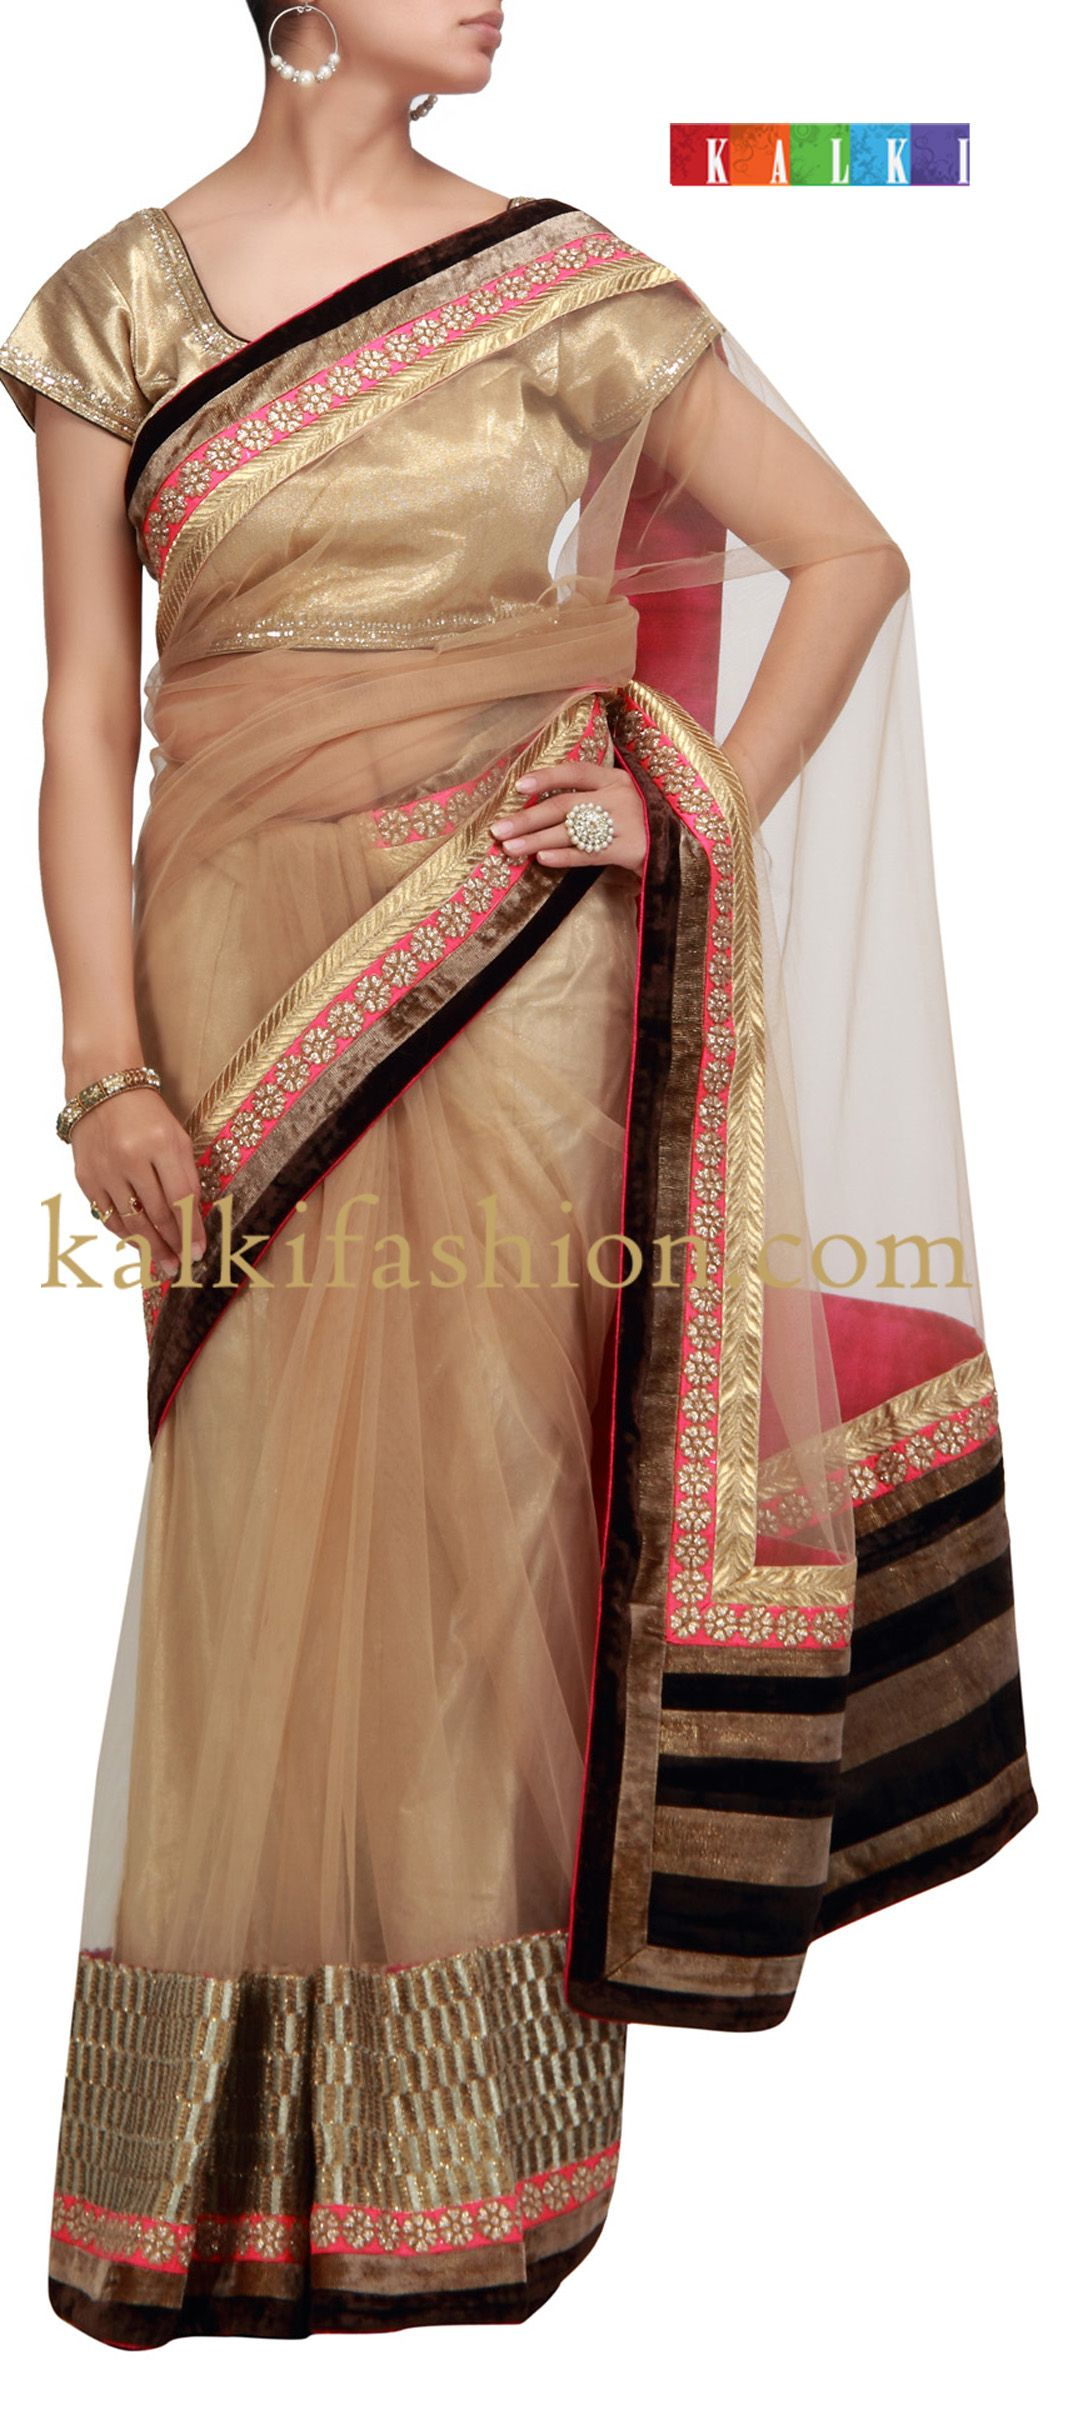 Net saree images buy it now kalkifashionbrownnetsareewithsequence